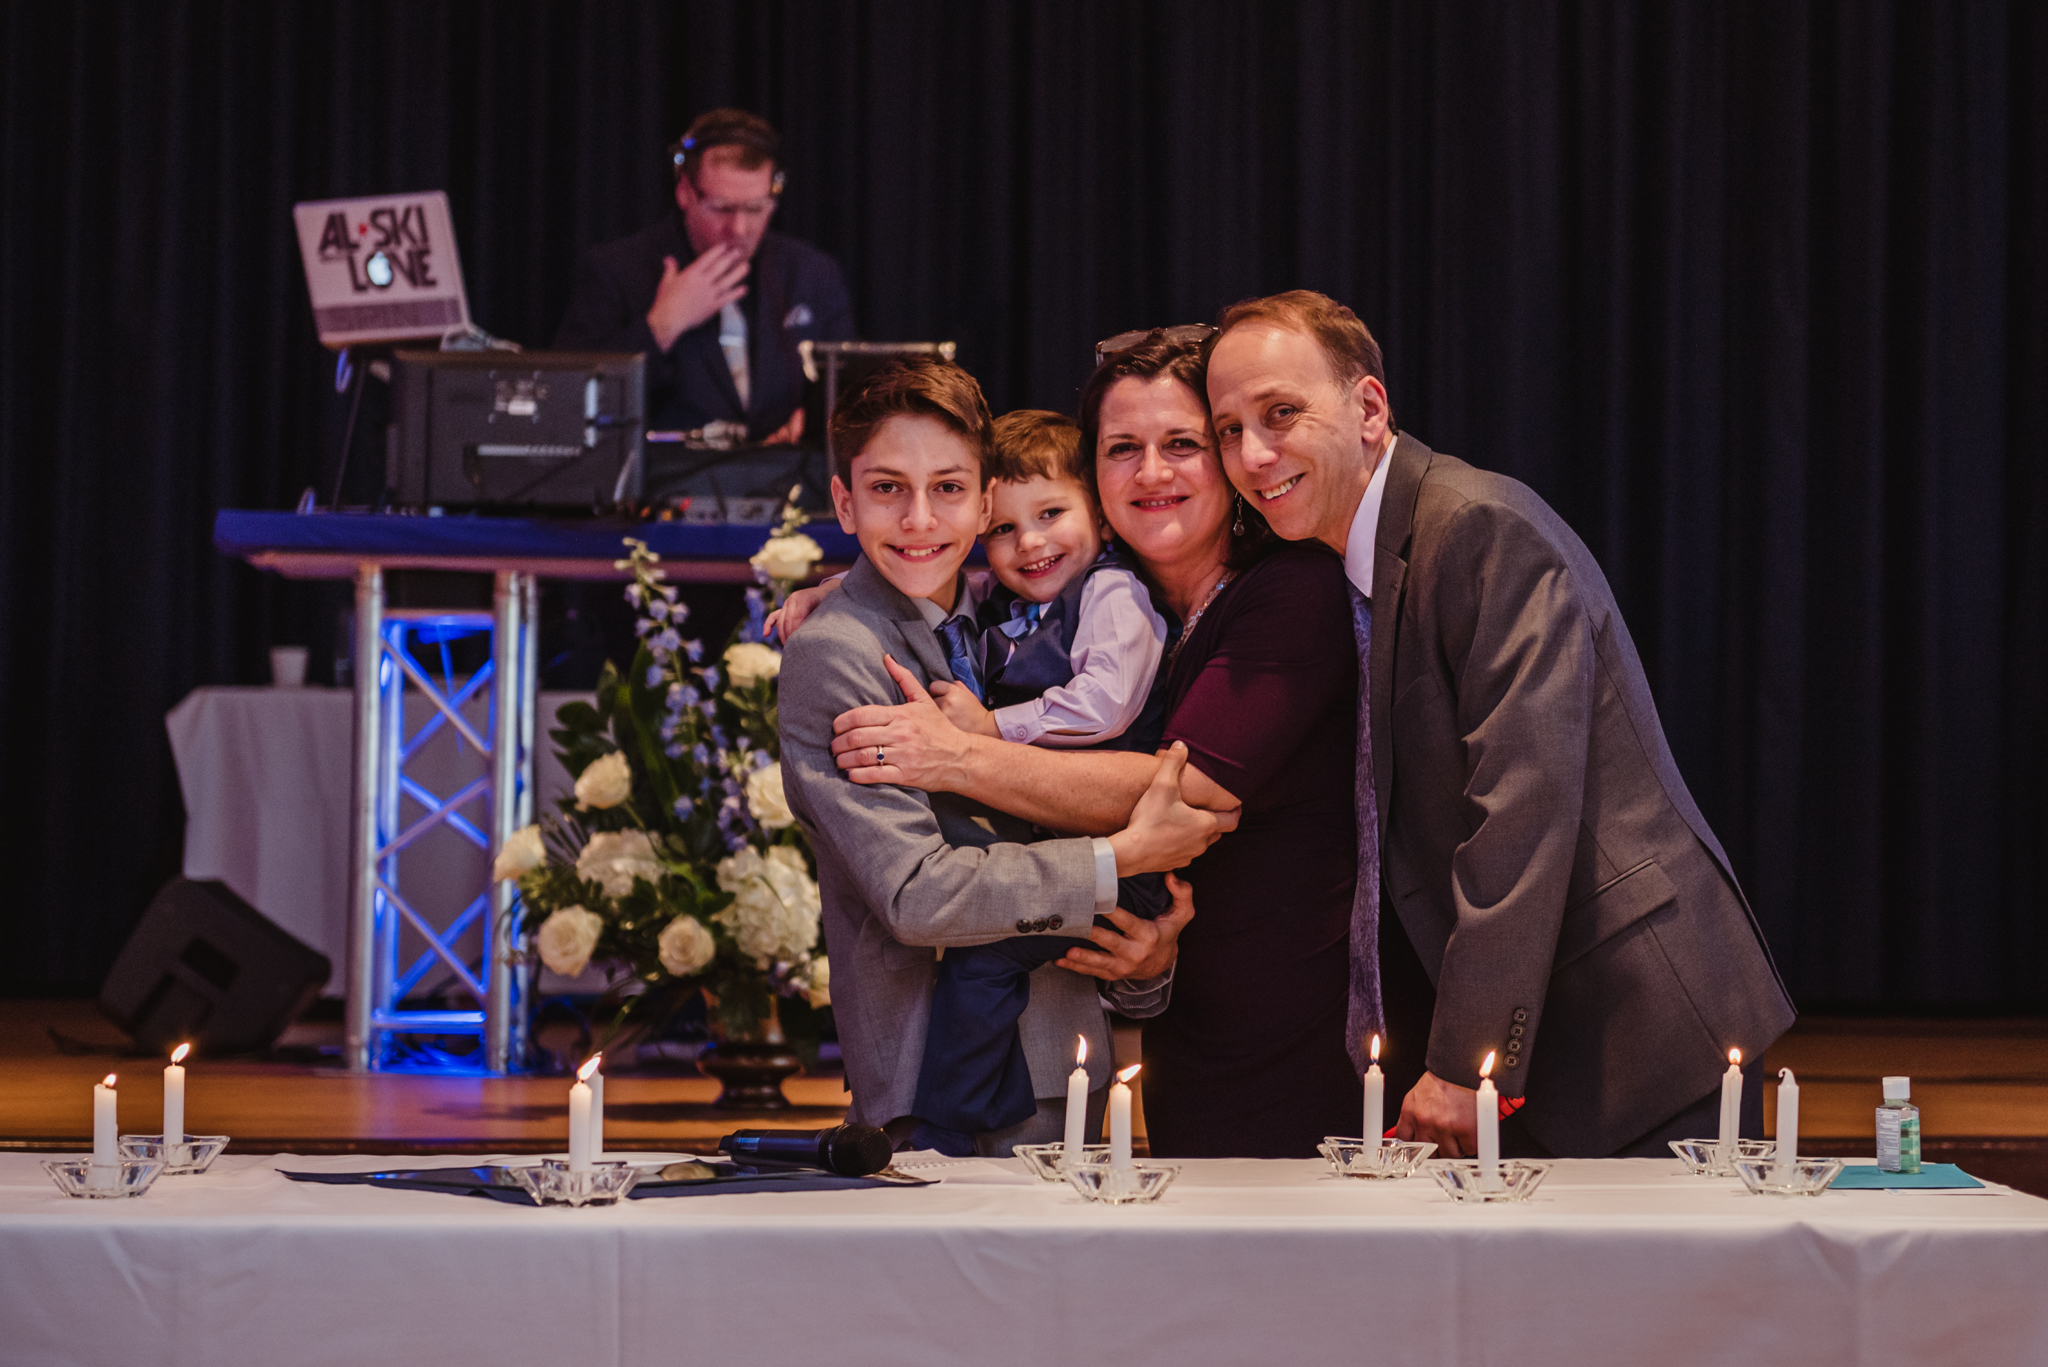 Noah and his family pose for a picture during the candle ceremony at his mitzvah reception at Temple Beth Or.